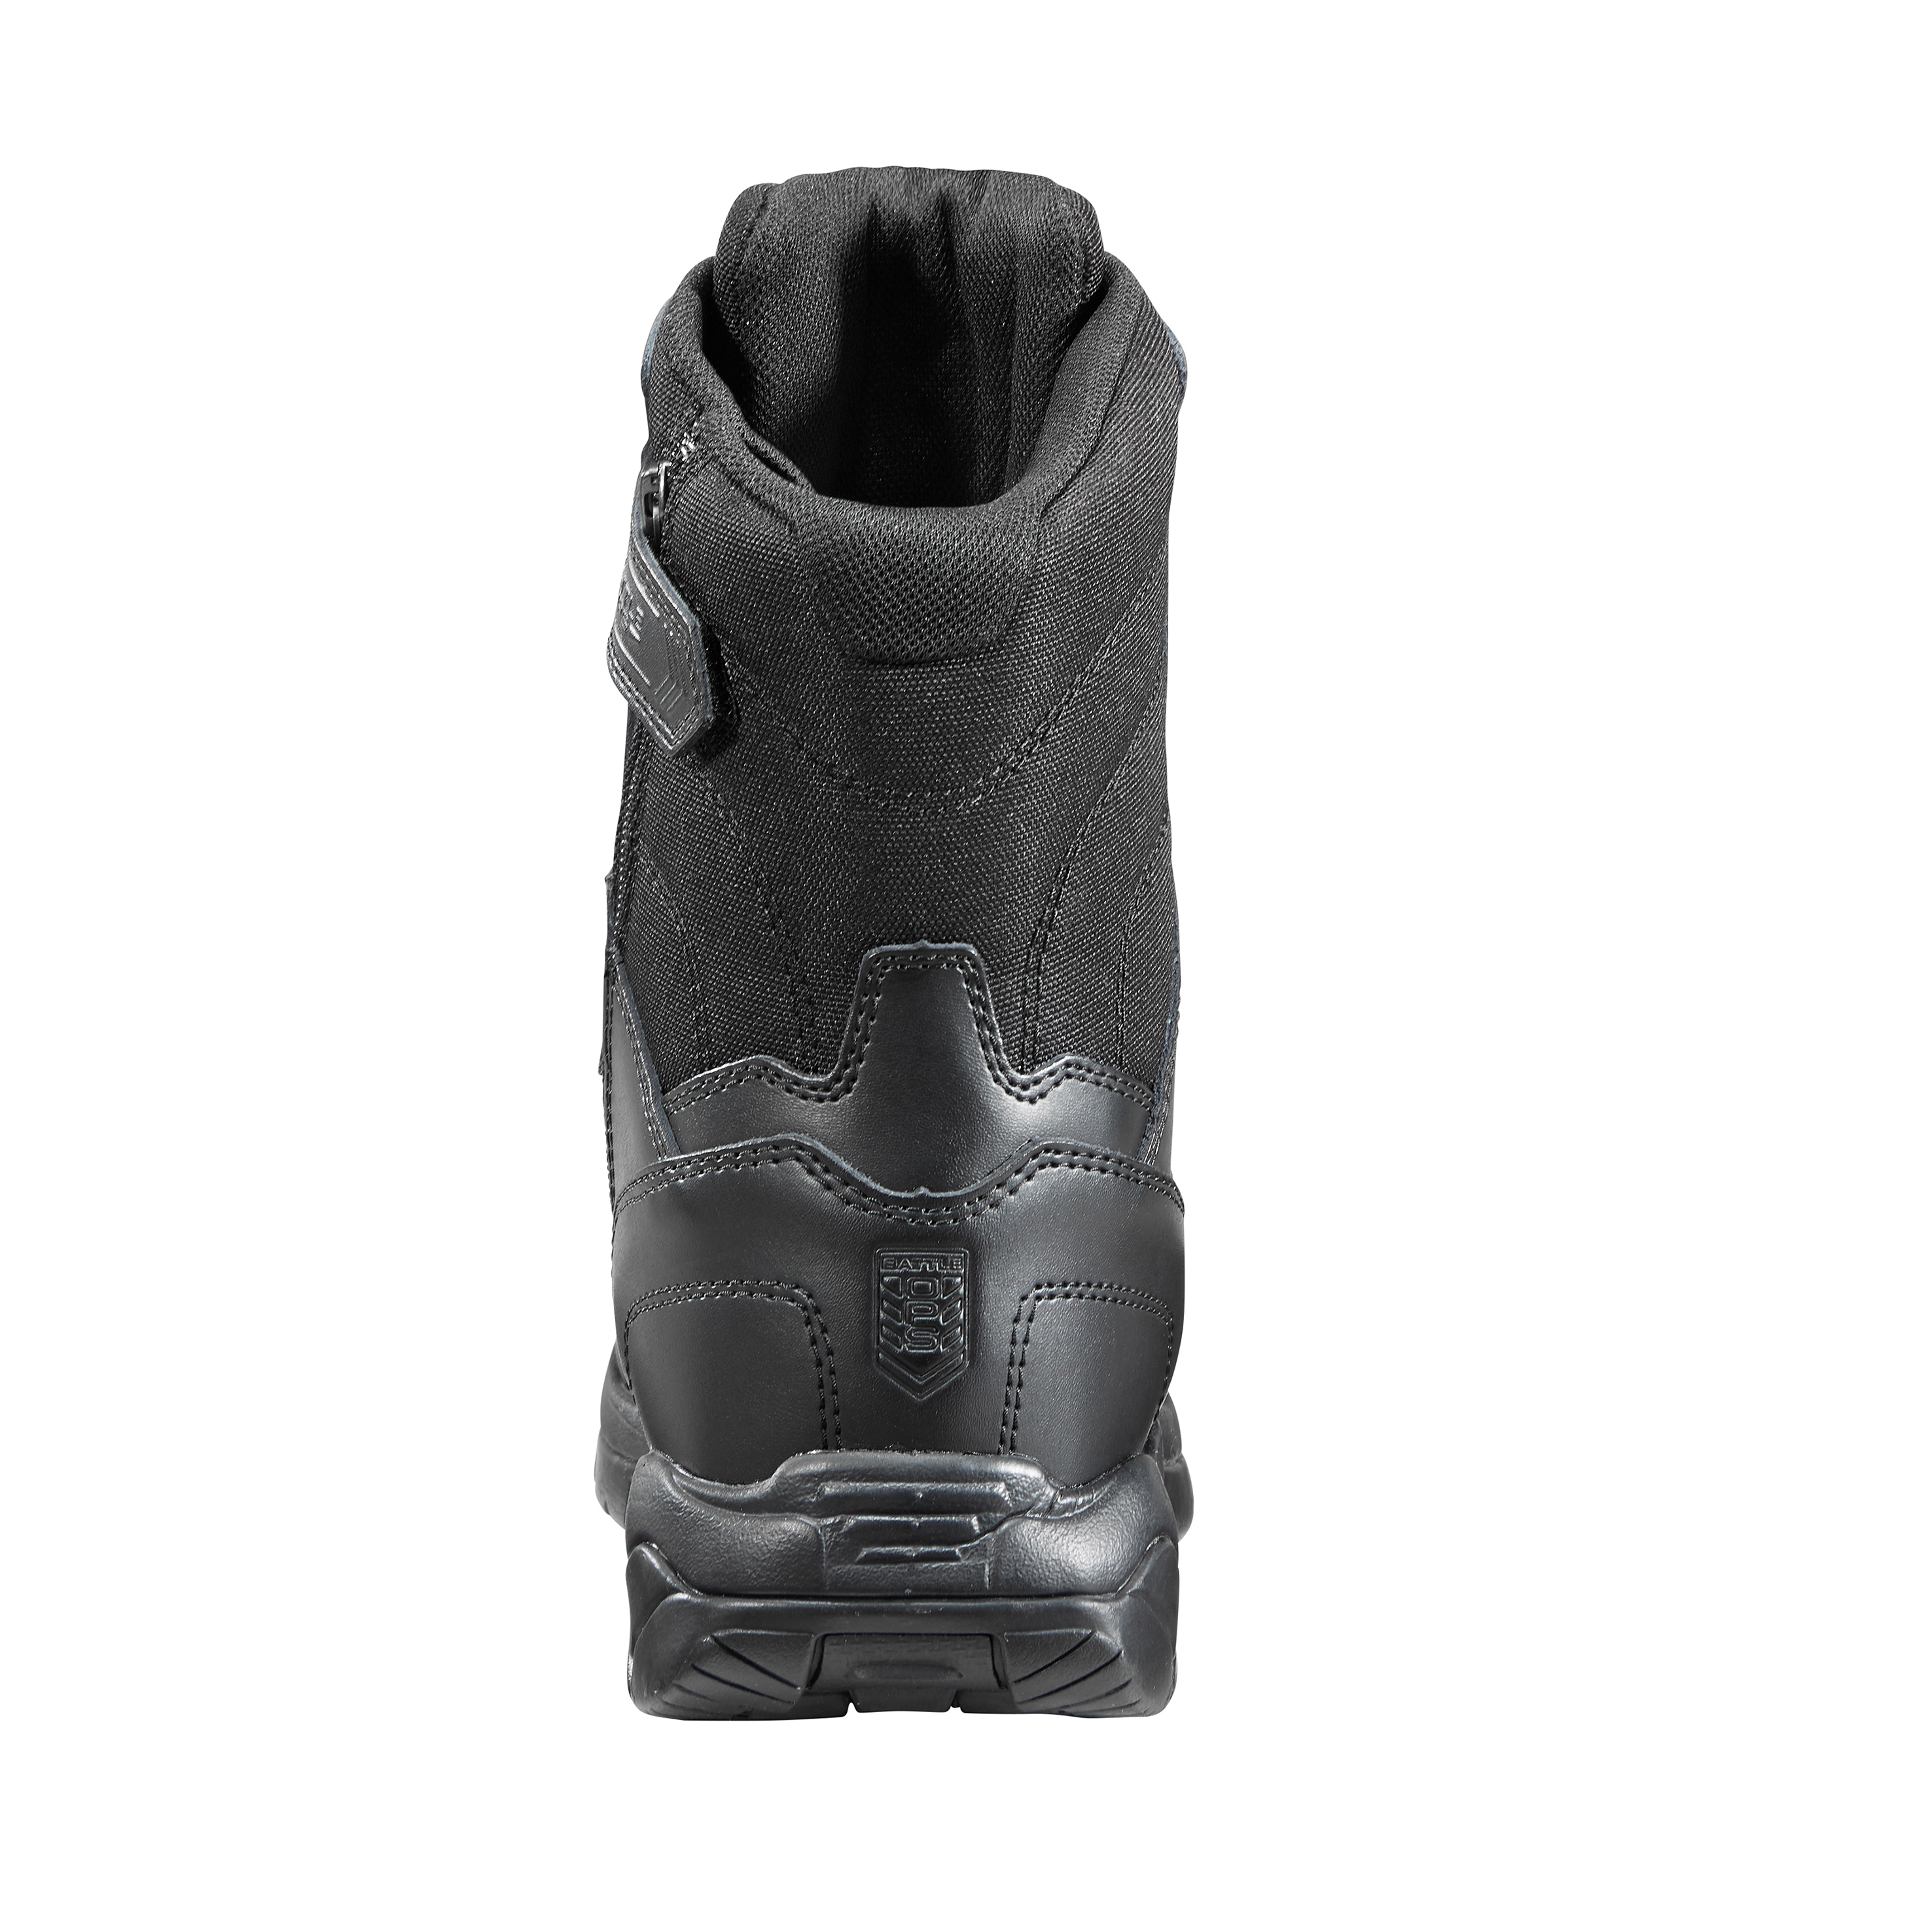 8-inch Waterproof Black Tactical Boot - Side Zip & Comp Safety Toe